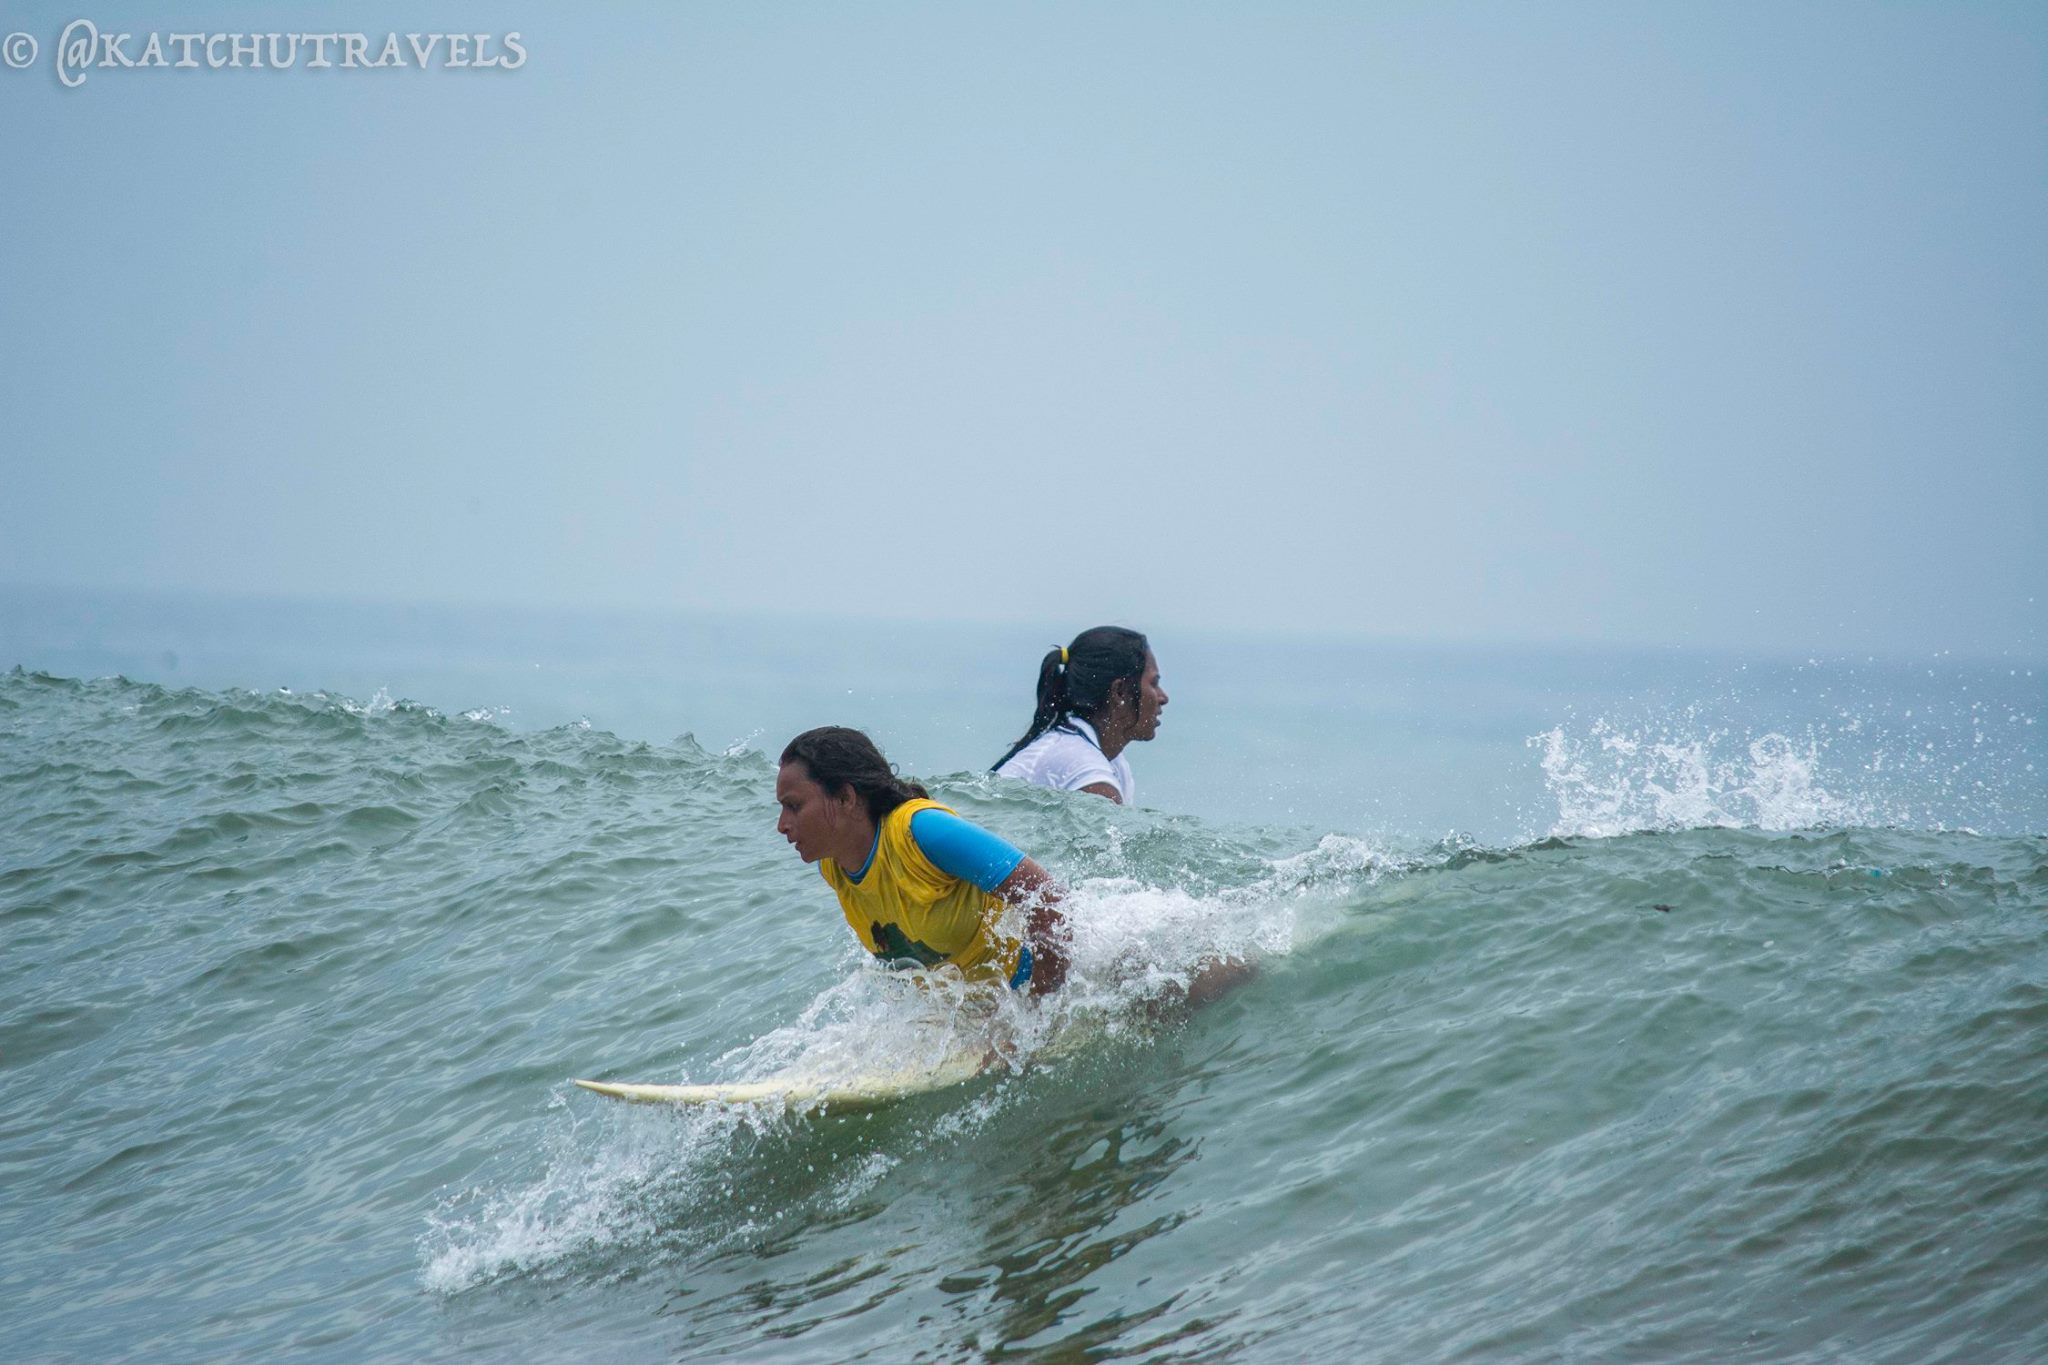 Surfing on the East Coast of India- Covelong Surf Festival